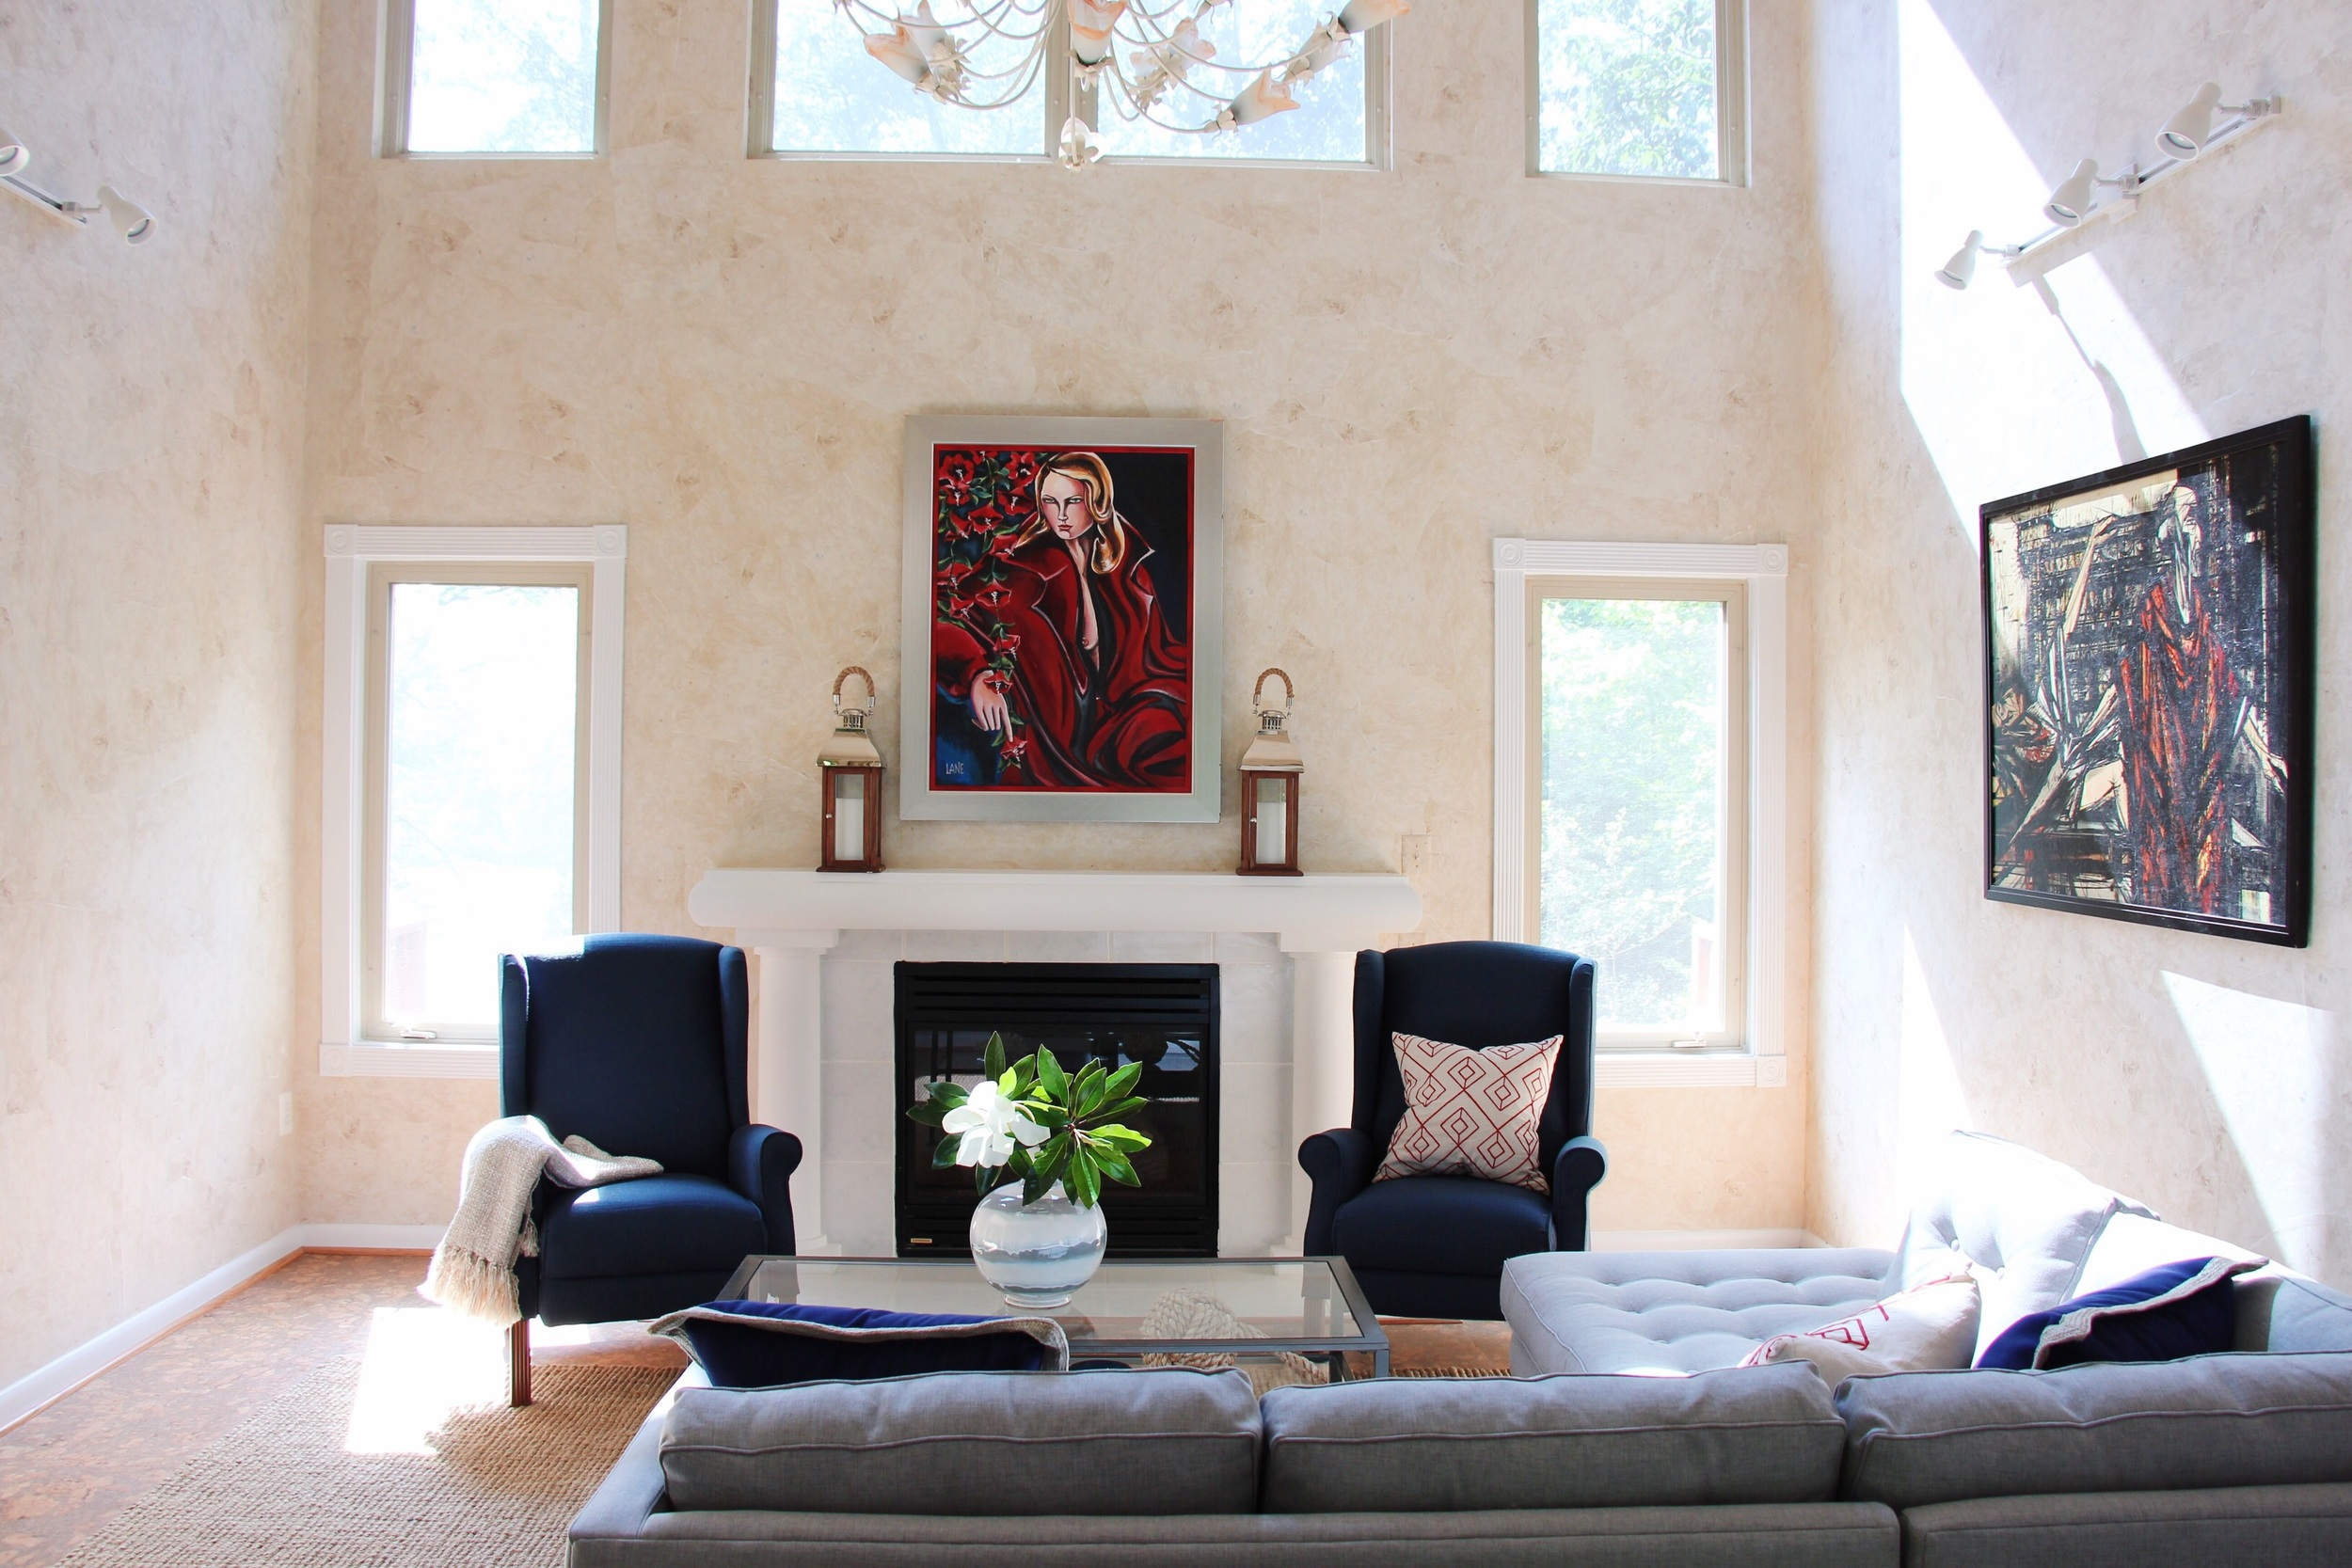 The pair of blue chairs are reclinable and perfect to read or take a nap next to the fireplace